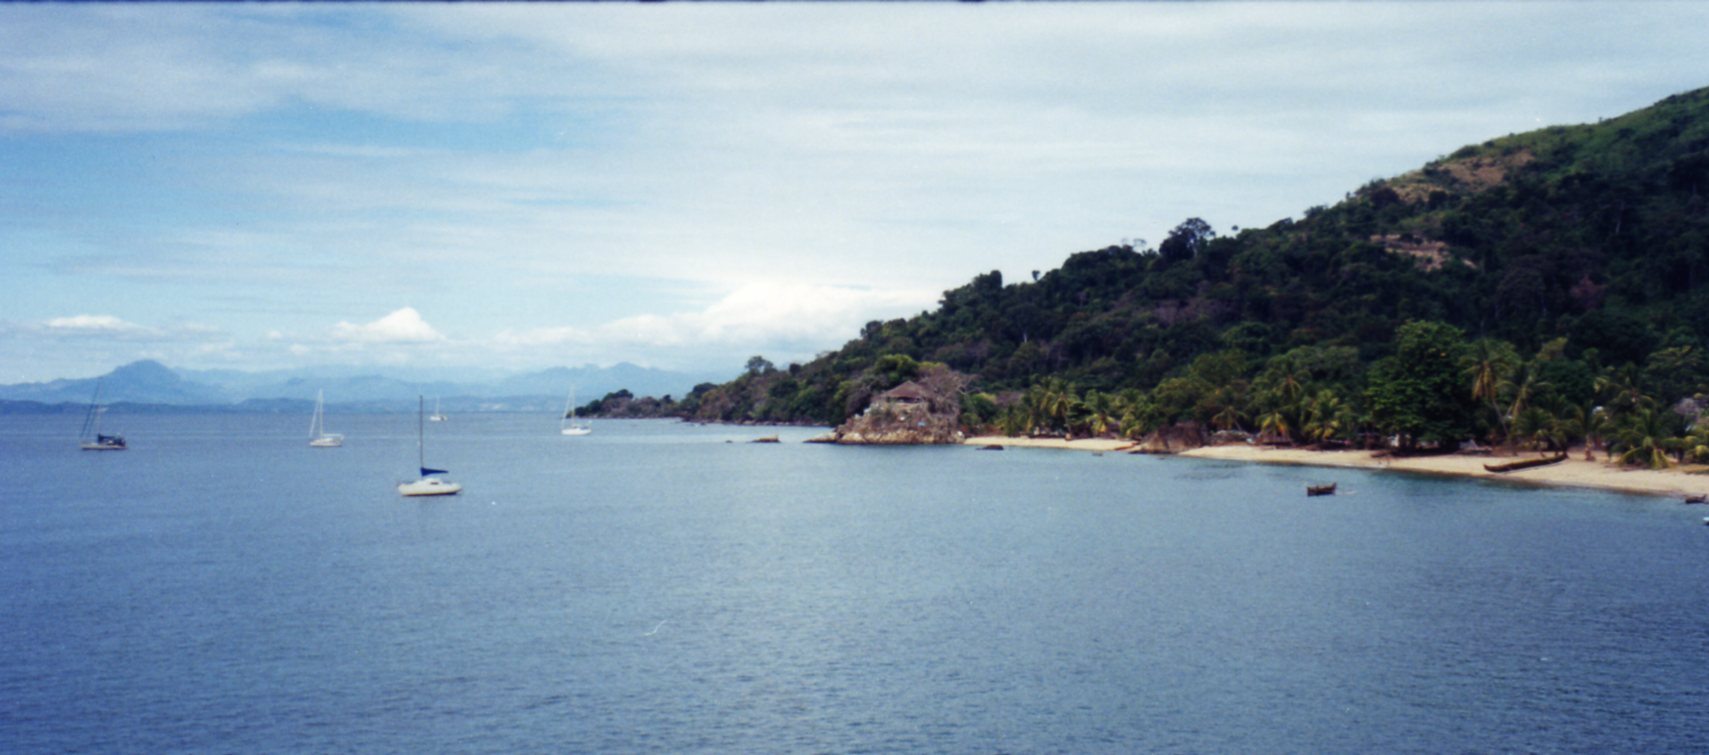 Moored in the bay at Nosy Komba